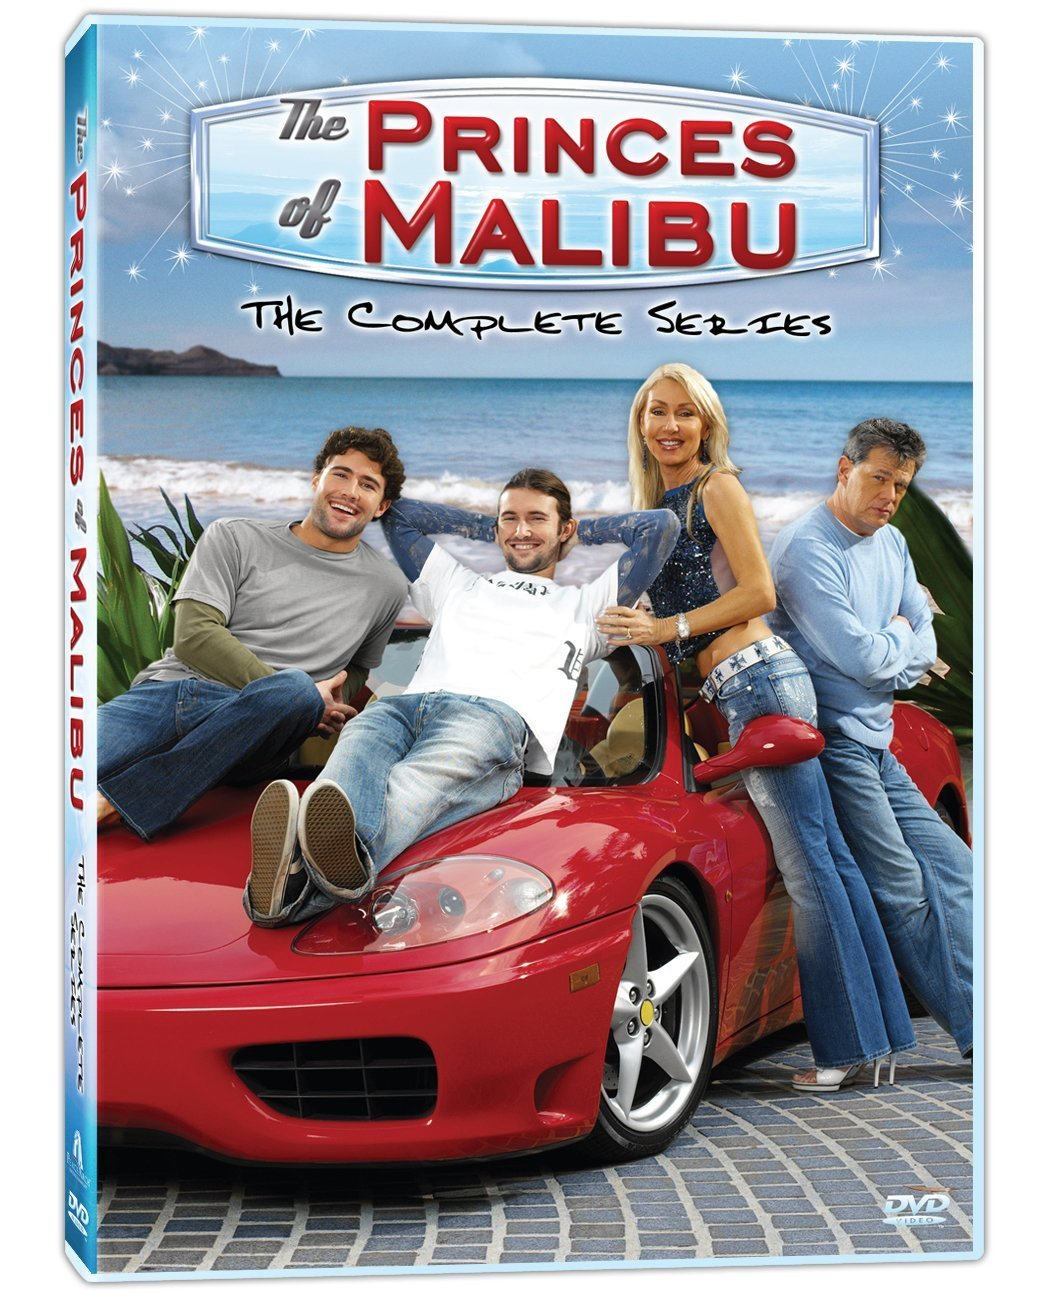 The Princes of Malibu (The Complete Series)